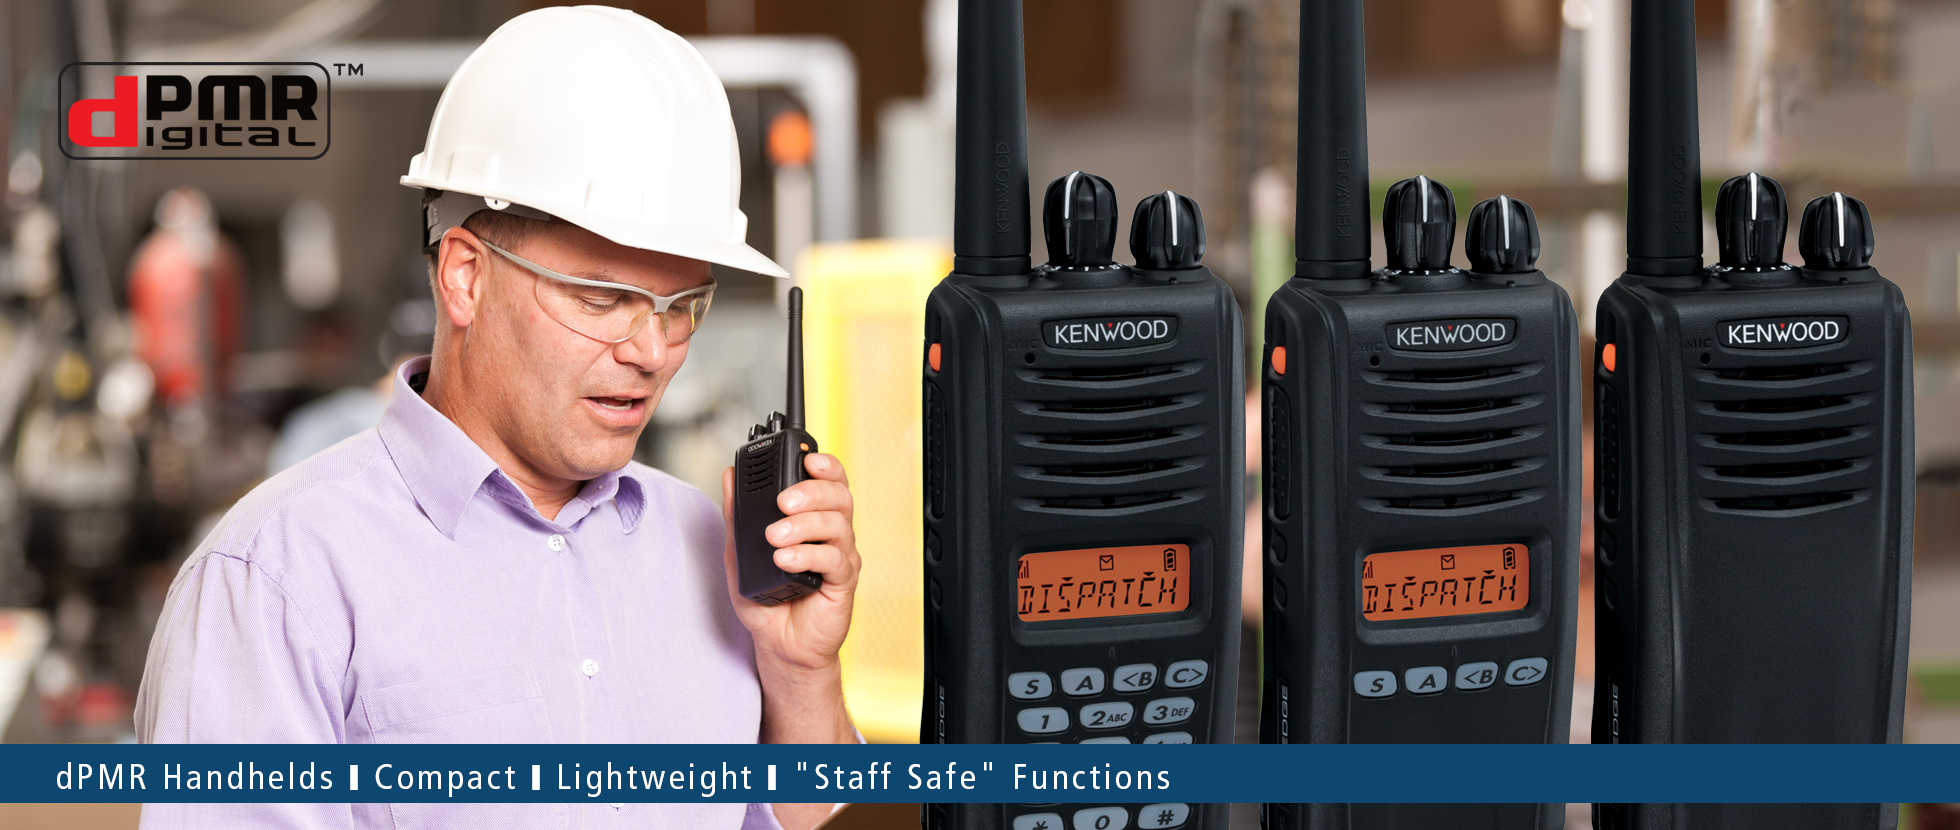 construction two way radio   best construction site two way radio   construction 2 way radios